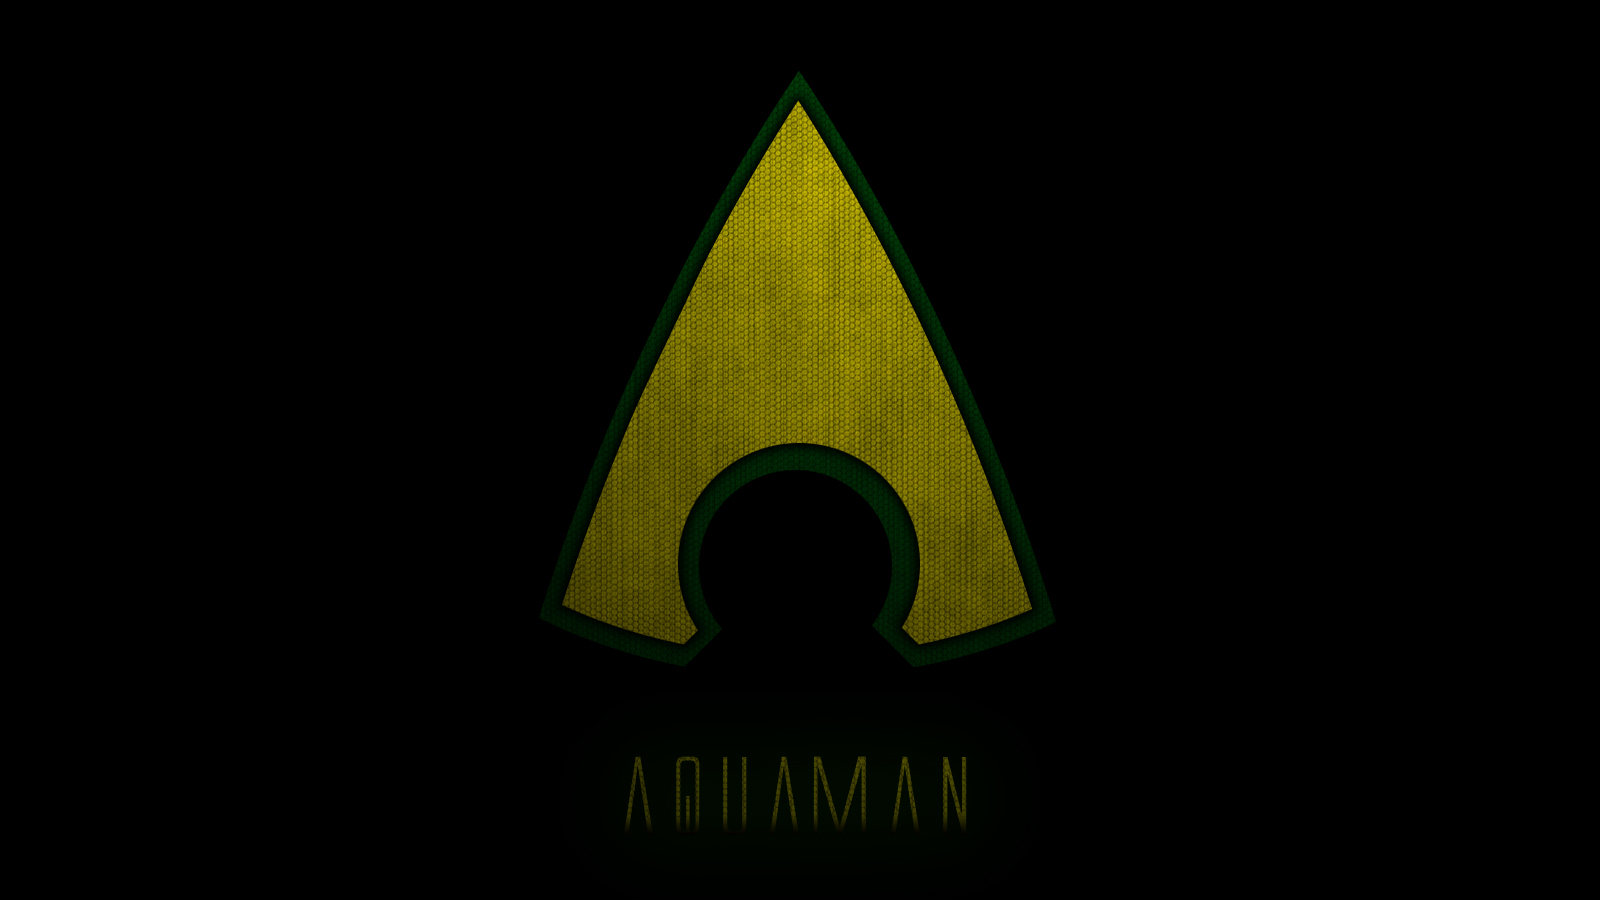 Aquaman Symbol by DeiNyght on DeviantArt